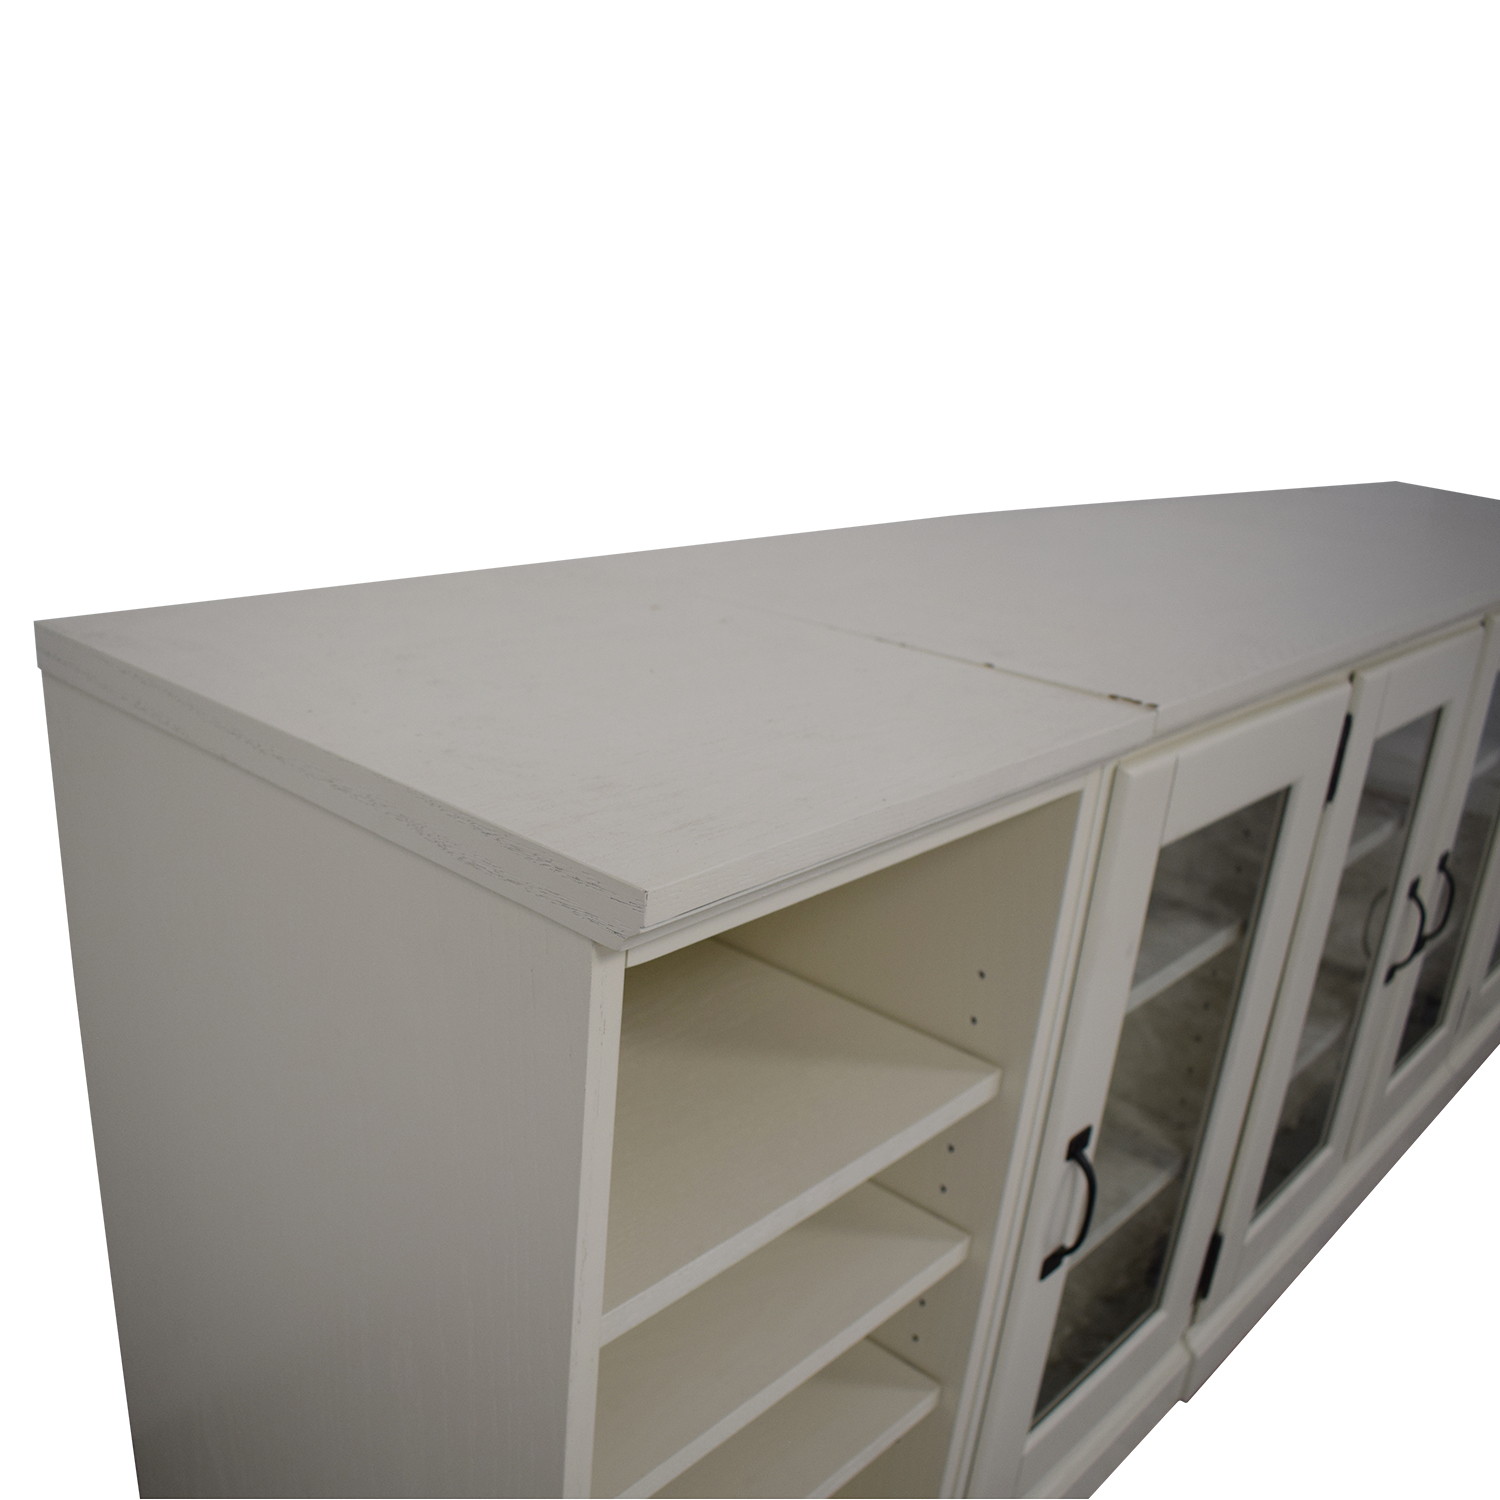 Pottery Barn Pottery Barn Media Unit on sale